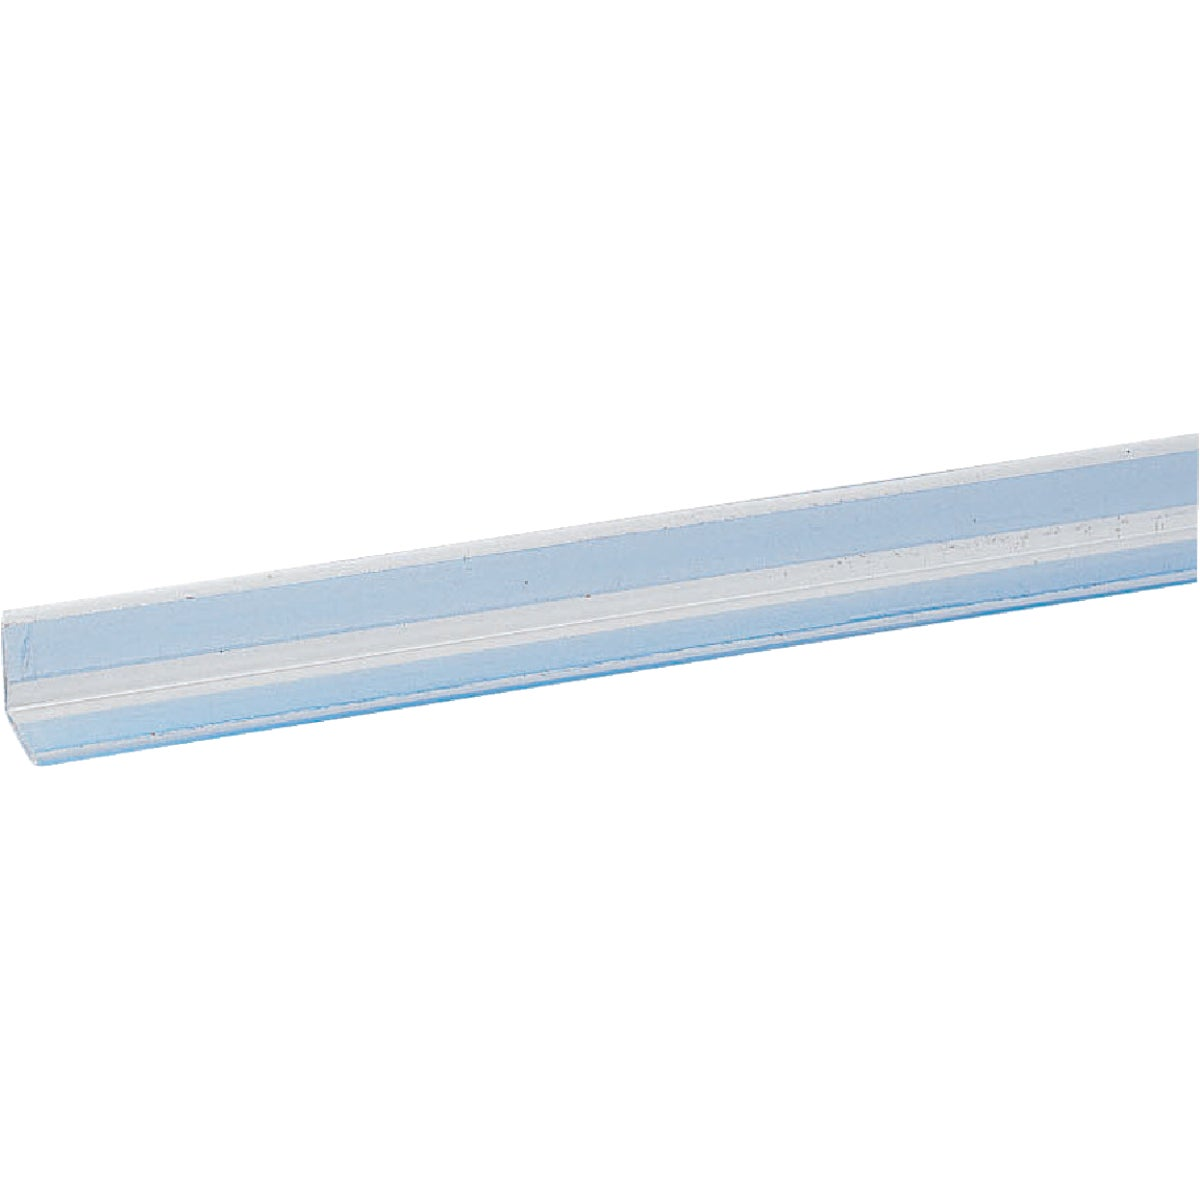 "1""X4'CLR ADH CORNERGUARD - SS4118 by Wall Protex"